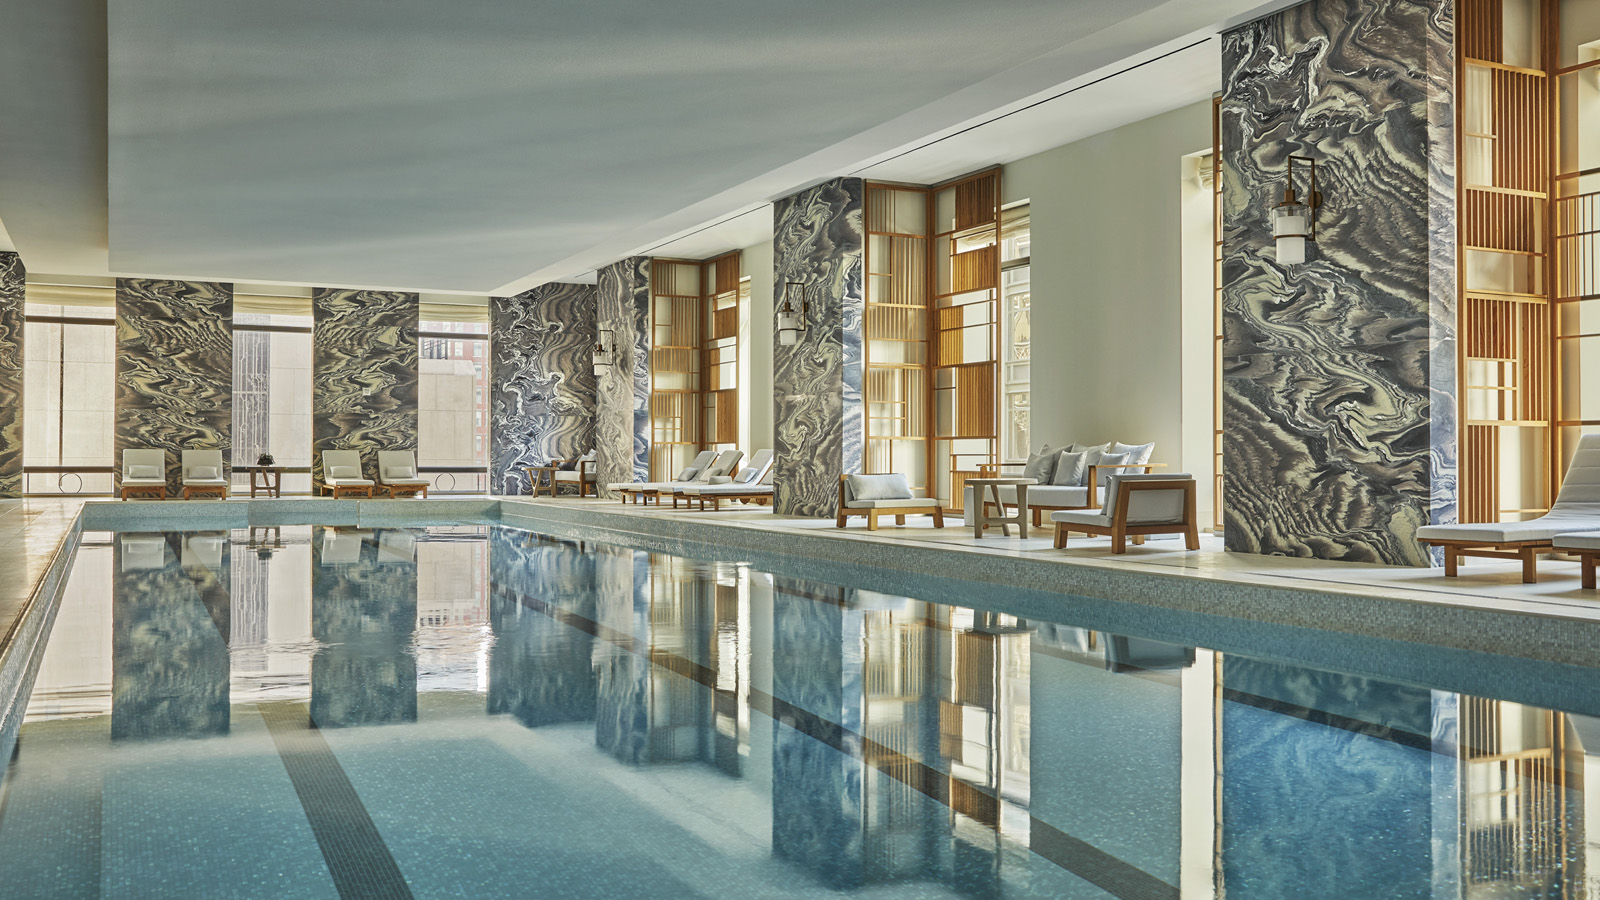 Hotel With Indoor Pool | Lap Pool | Four Seasons New York Downtown